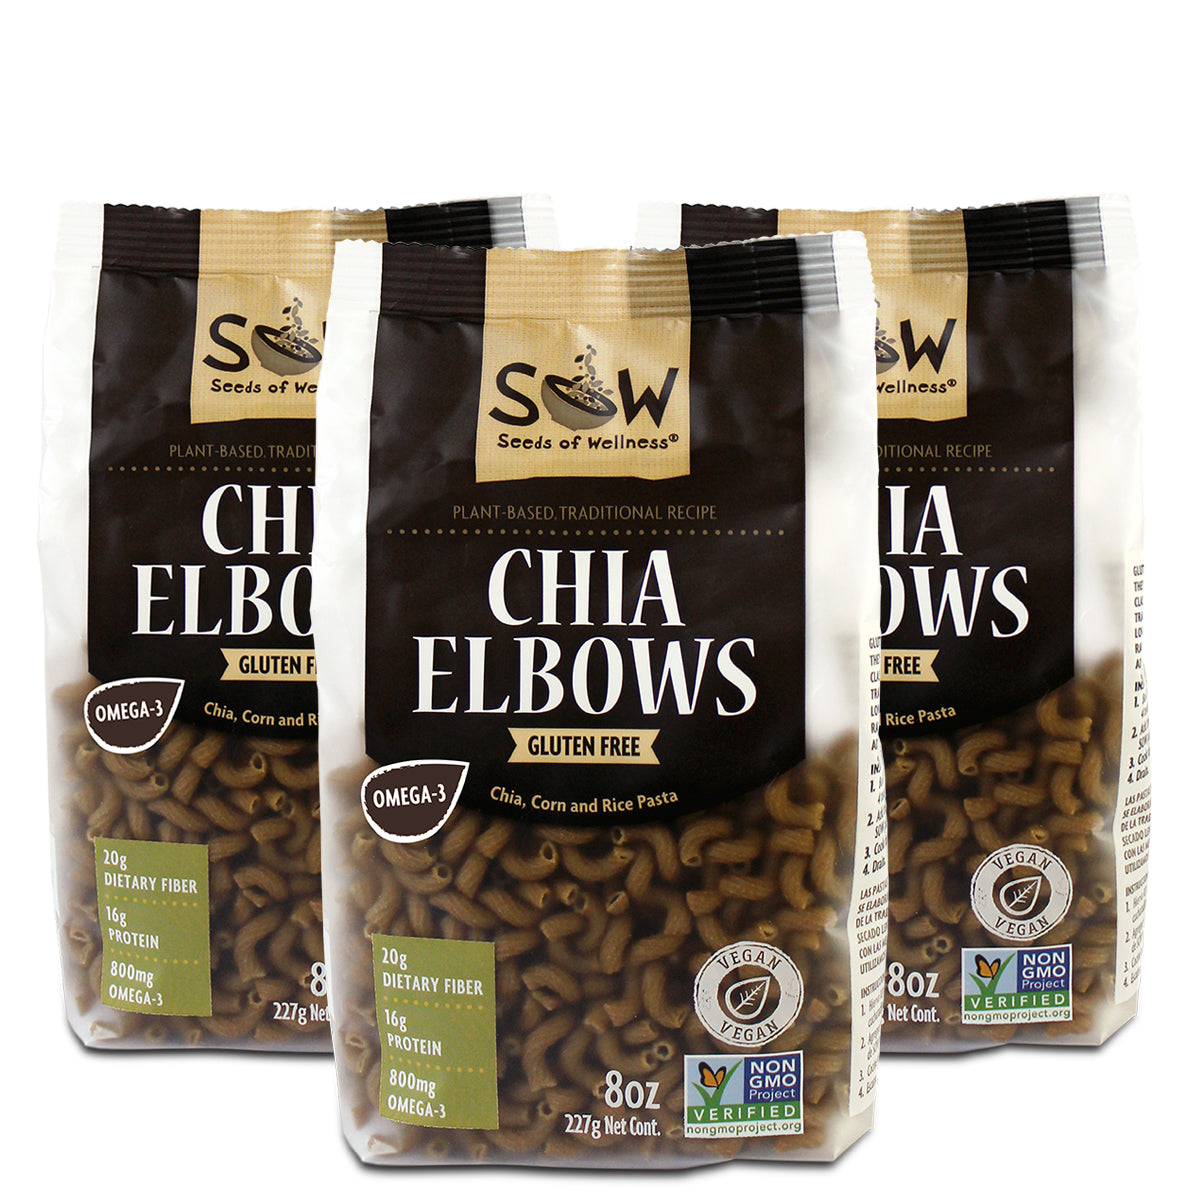 CHIA ELBOWS 3-PACK